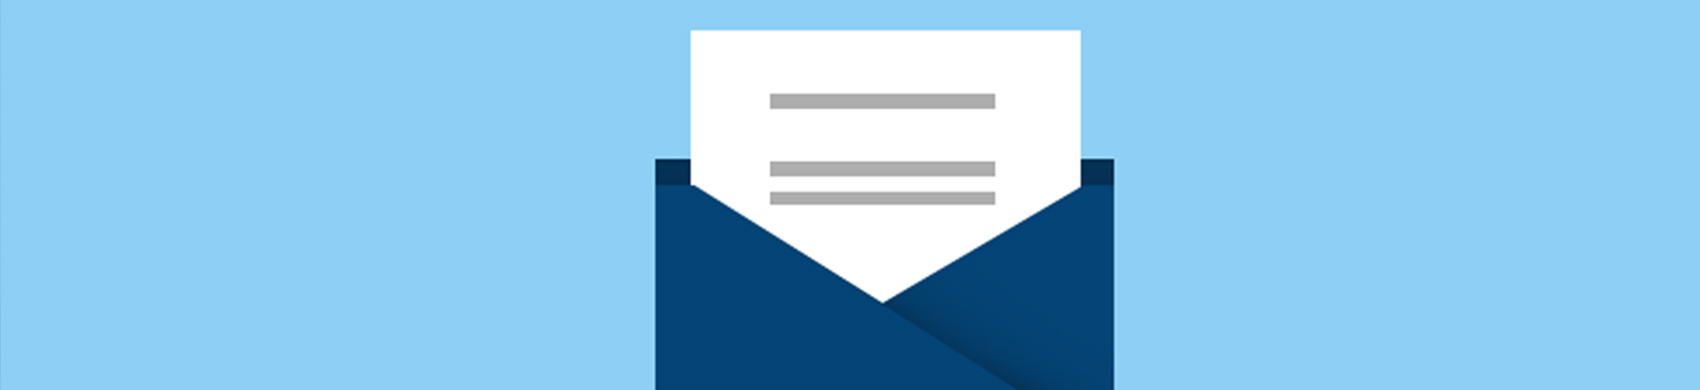 emailmarketing-gesprodat